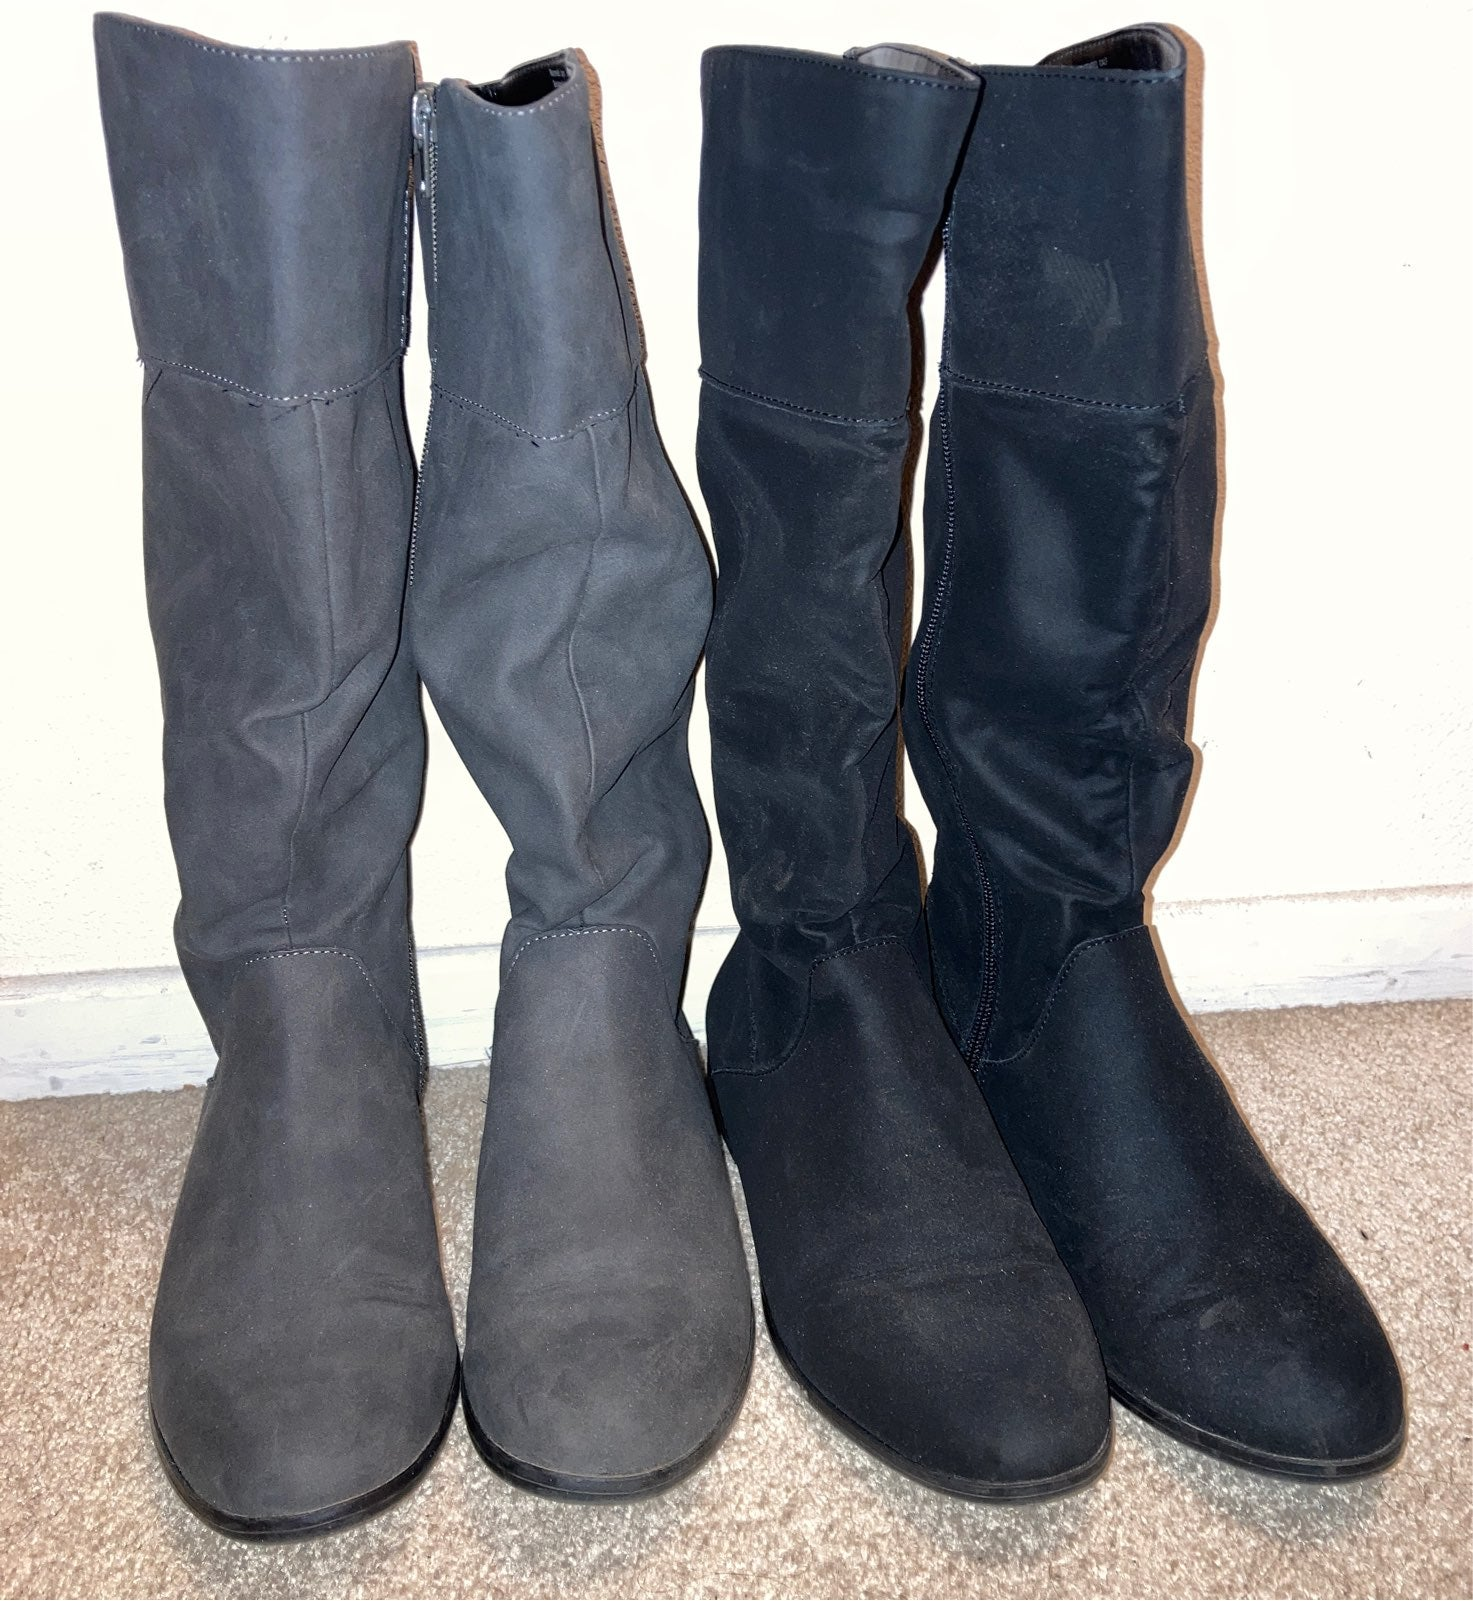 Womens Ruched Mid-Calf Boots lot